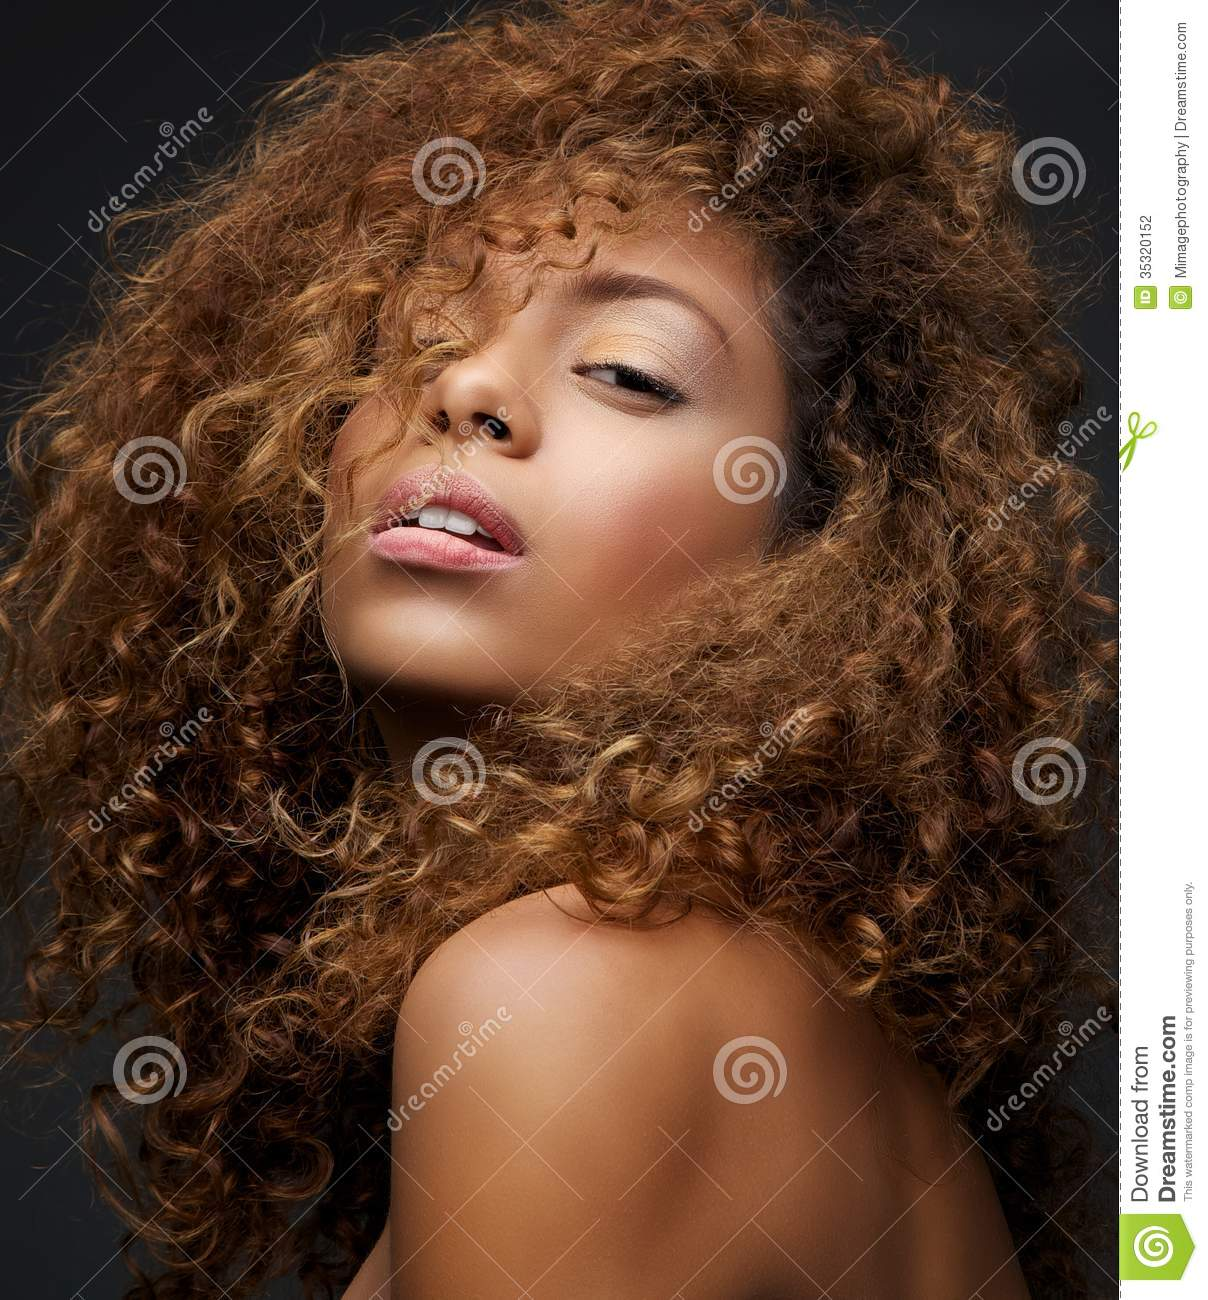 Beauty Portrait Of A Female Fashion Model With Curly Hair